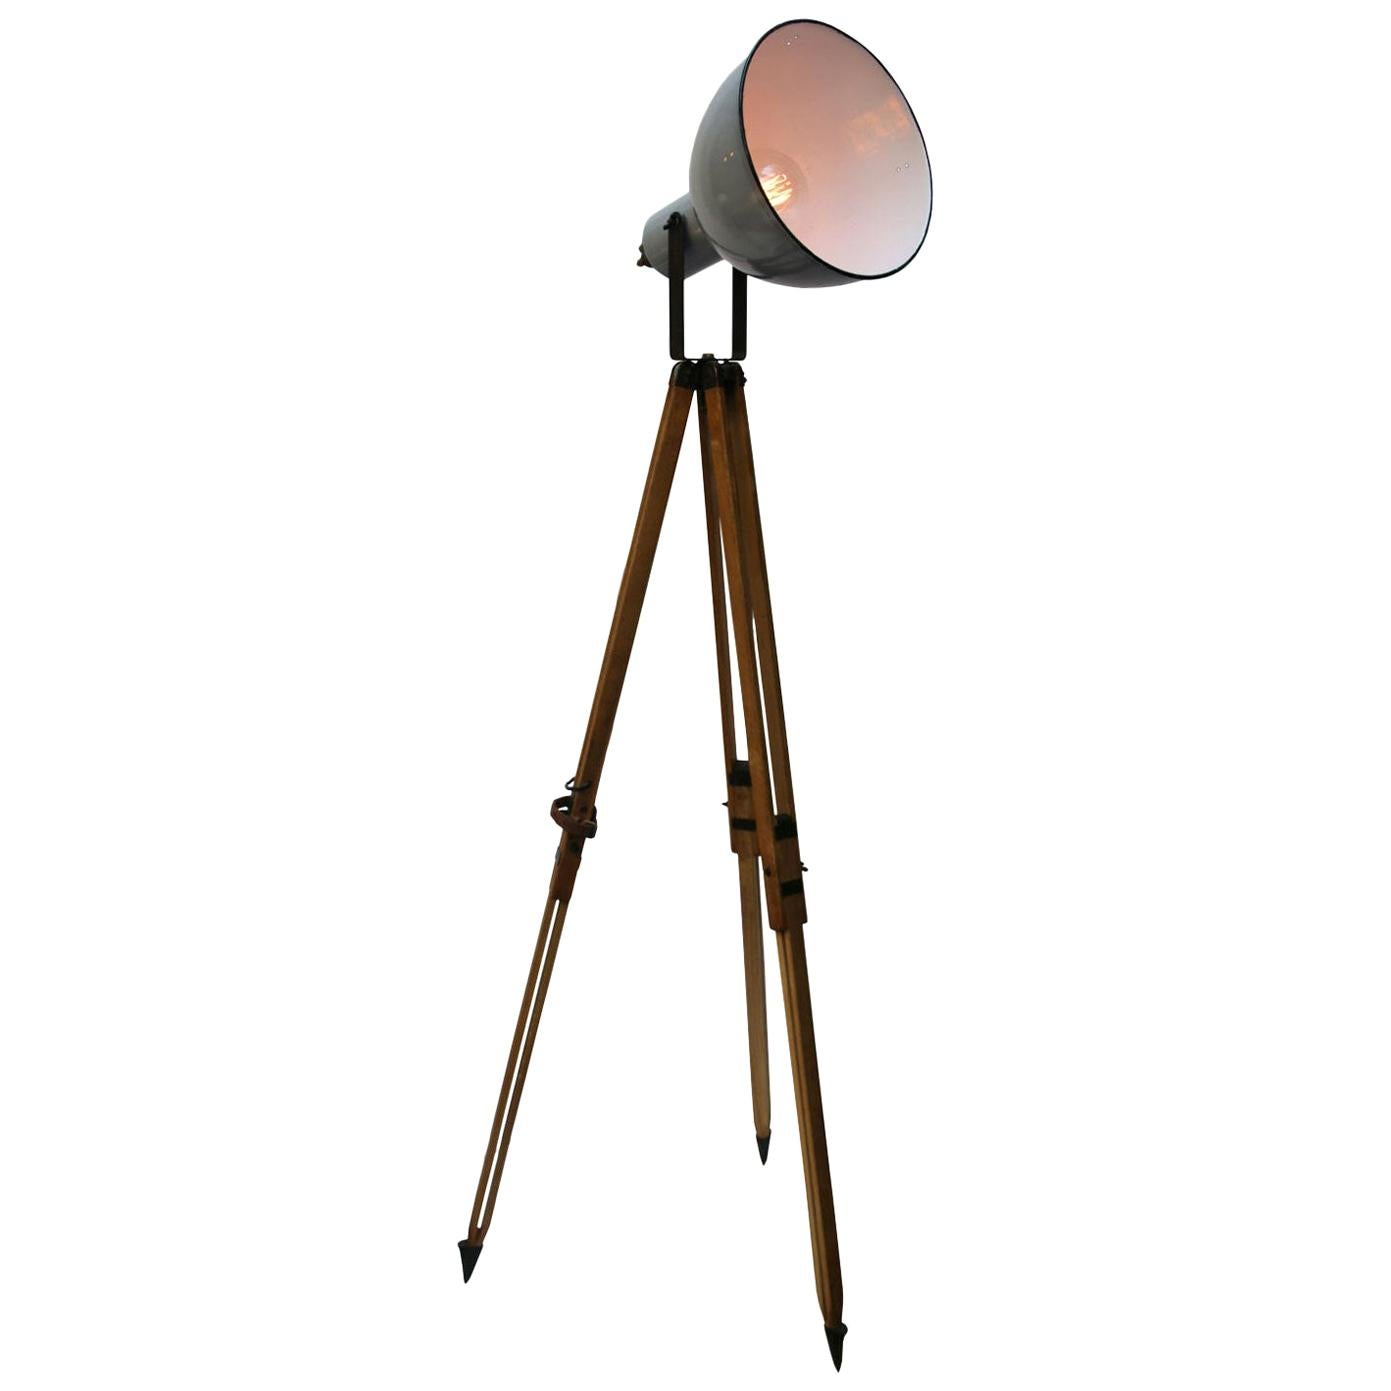 Wooden Tripod Gray Enamel Vintage Industrial Spot Light Floor Lamps